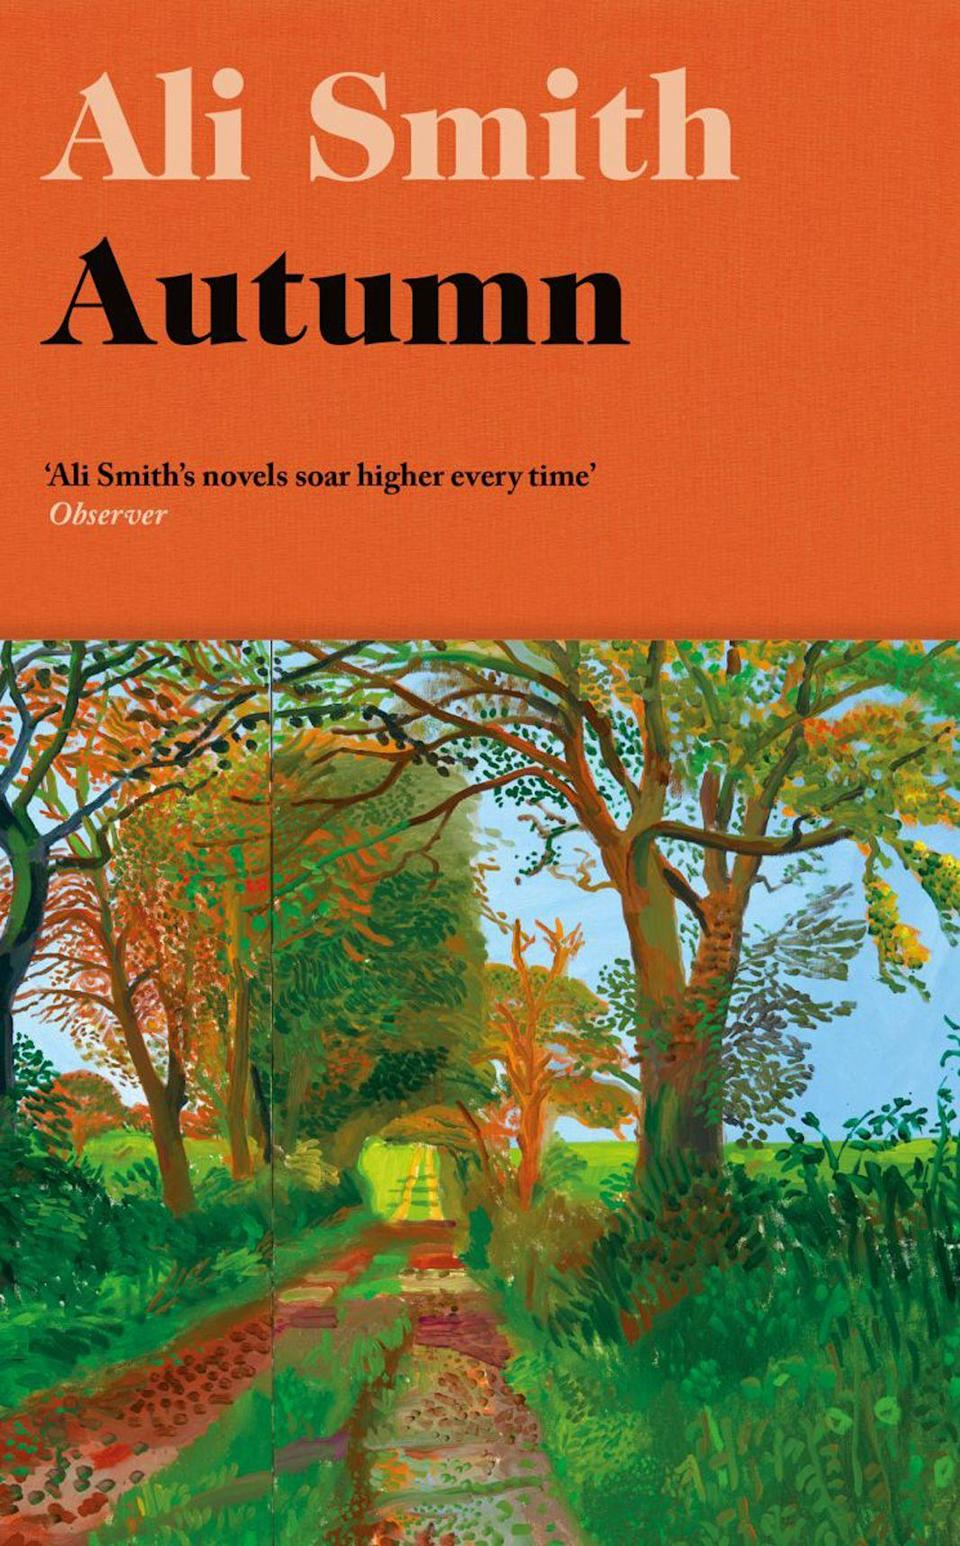 """<p><em><strong>Autumn</strong></em></p><p>By Ali Smith</p><p>Described as the first """"post-Brexit novel"""", the peerless Ali Smith may have written her latest work extraordinarily quickly but you'd never know it. <em>Autumn</em> is set in a divided Britain after a <a href=""""http://www.refinery29.uk/brexit-voting-analysis"""" rel=""""nofollow noopener"""" target=""""_blank"""" data-ylk=""""slk:politically historic summer"""" class=""""link rapid-noclick-resp"""">politically historic summer</a> and asks the question: in a world where borders and walls (cc: President-elect Trump) are springing up all over the place, what do richness and worth really mean today? <em>Autumn</em> is the first of a seasonal quartet of books so we can expect another bountiful harvest from Smith soon.</p>"""